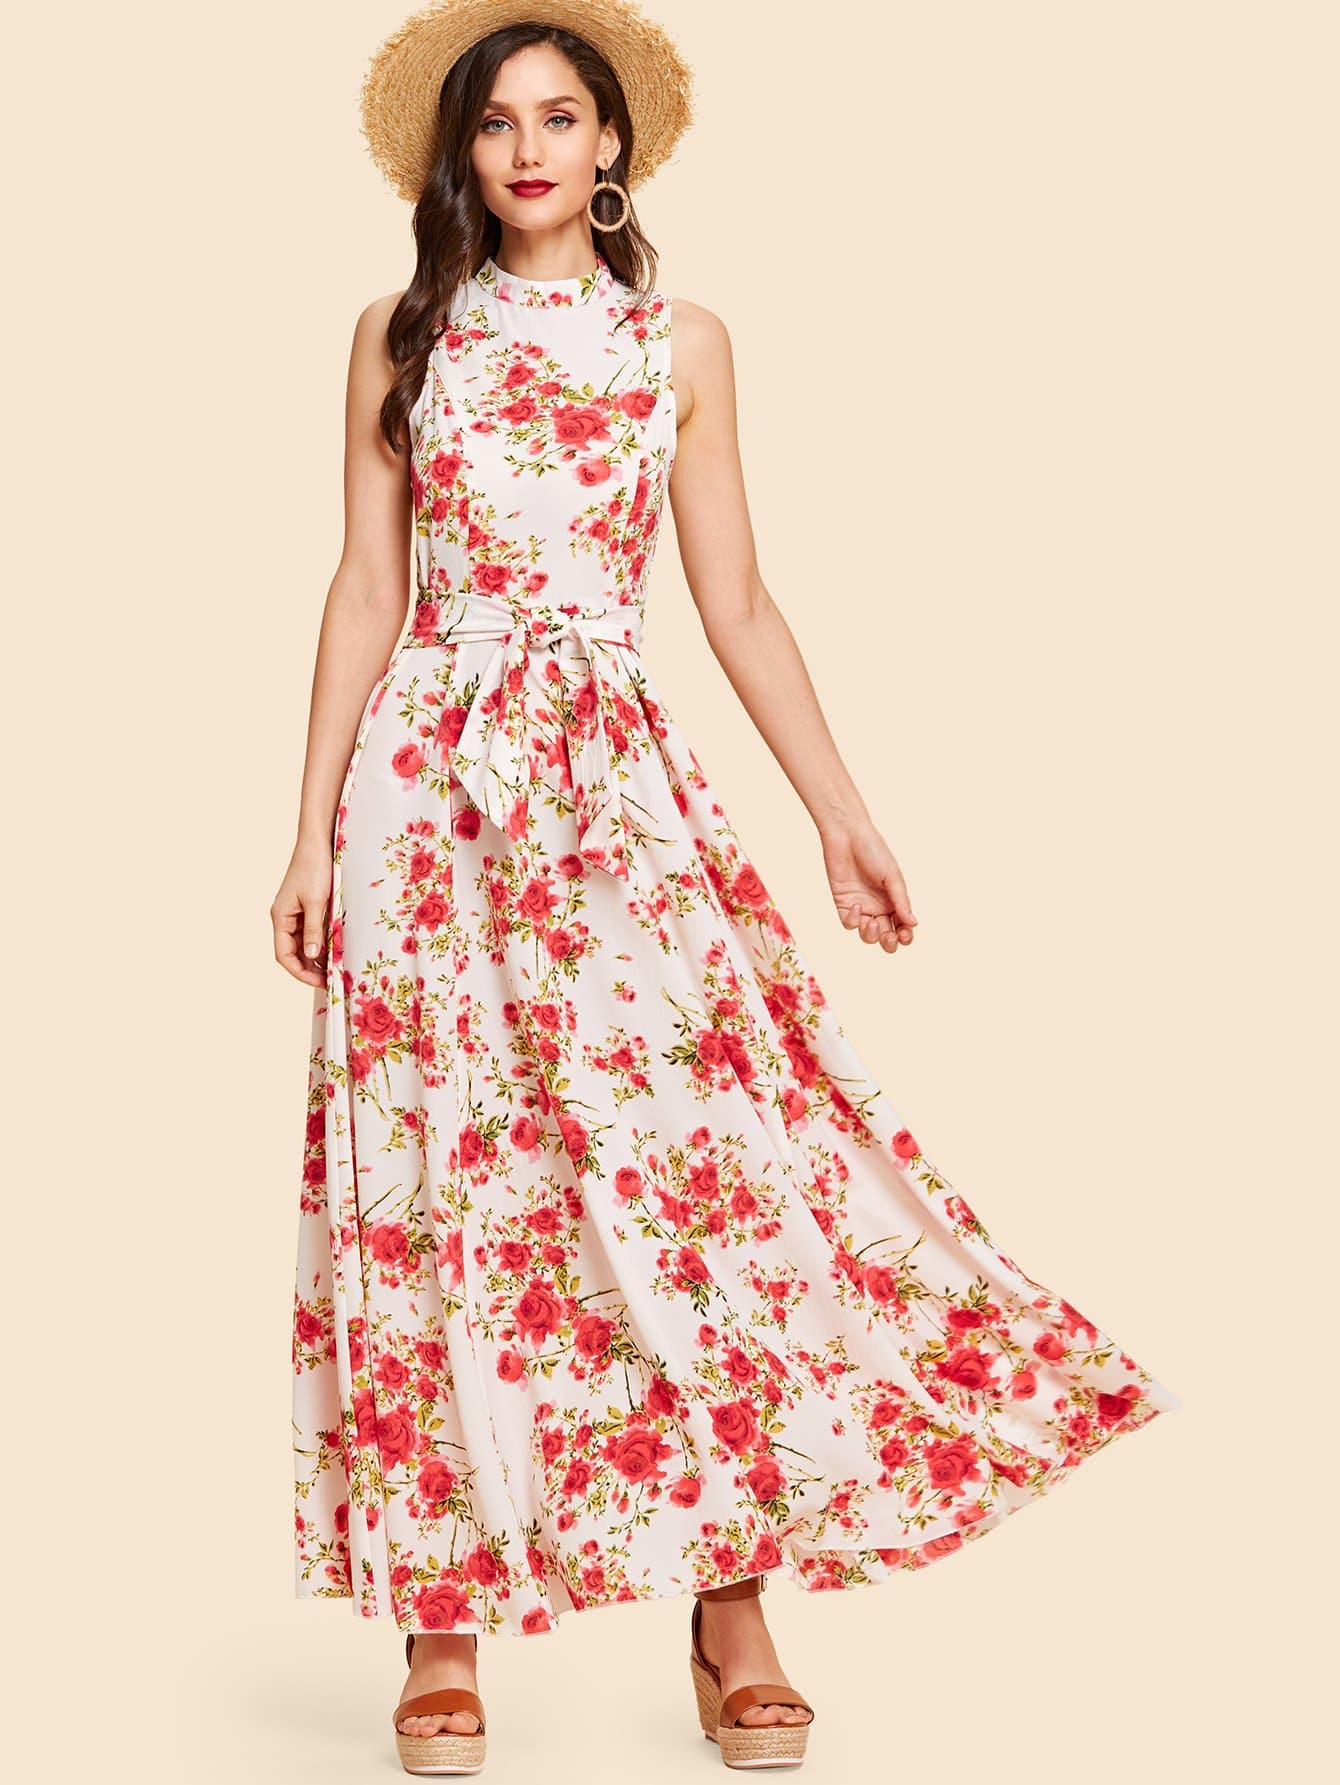 Bow Tie Neck Fit and Flare Floral Dress fit and flare patterned dress